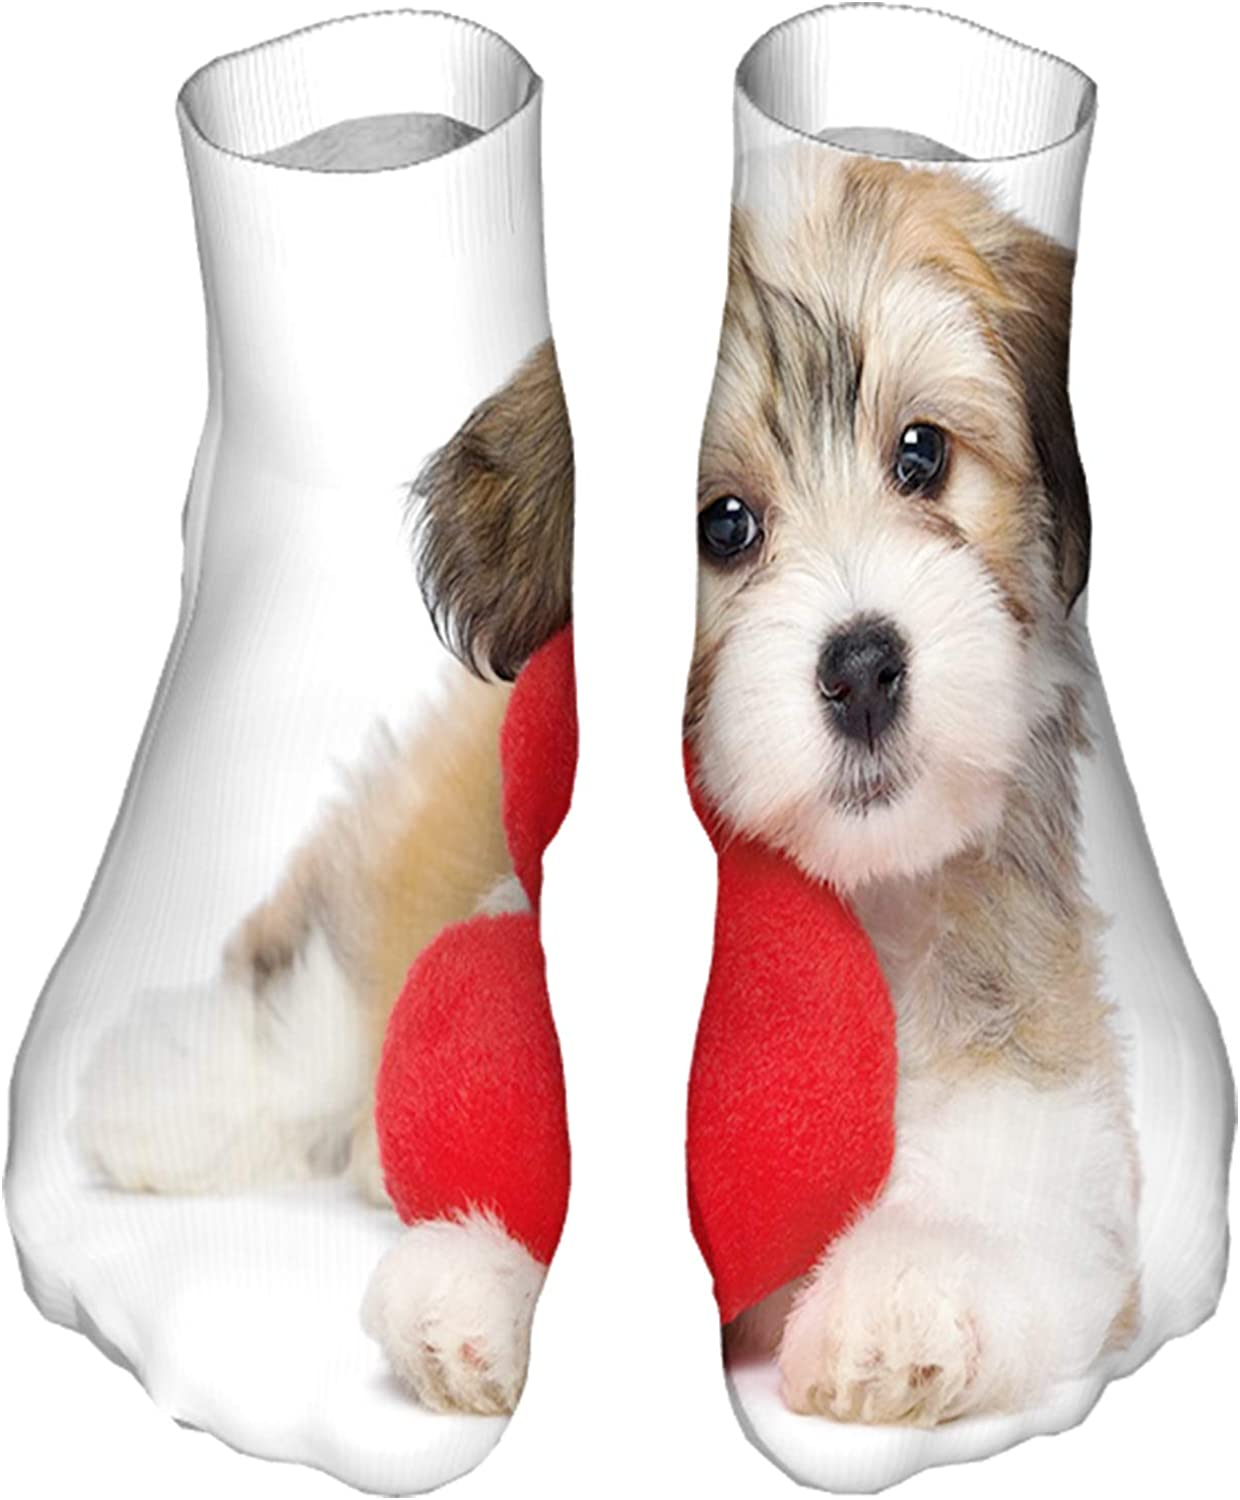 Men's and Women's Fun Socks Printed Cool Novelty Funny Socks,Lover Valentine Havanese Puppy Dog with a Red Heart